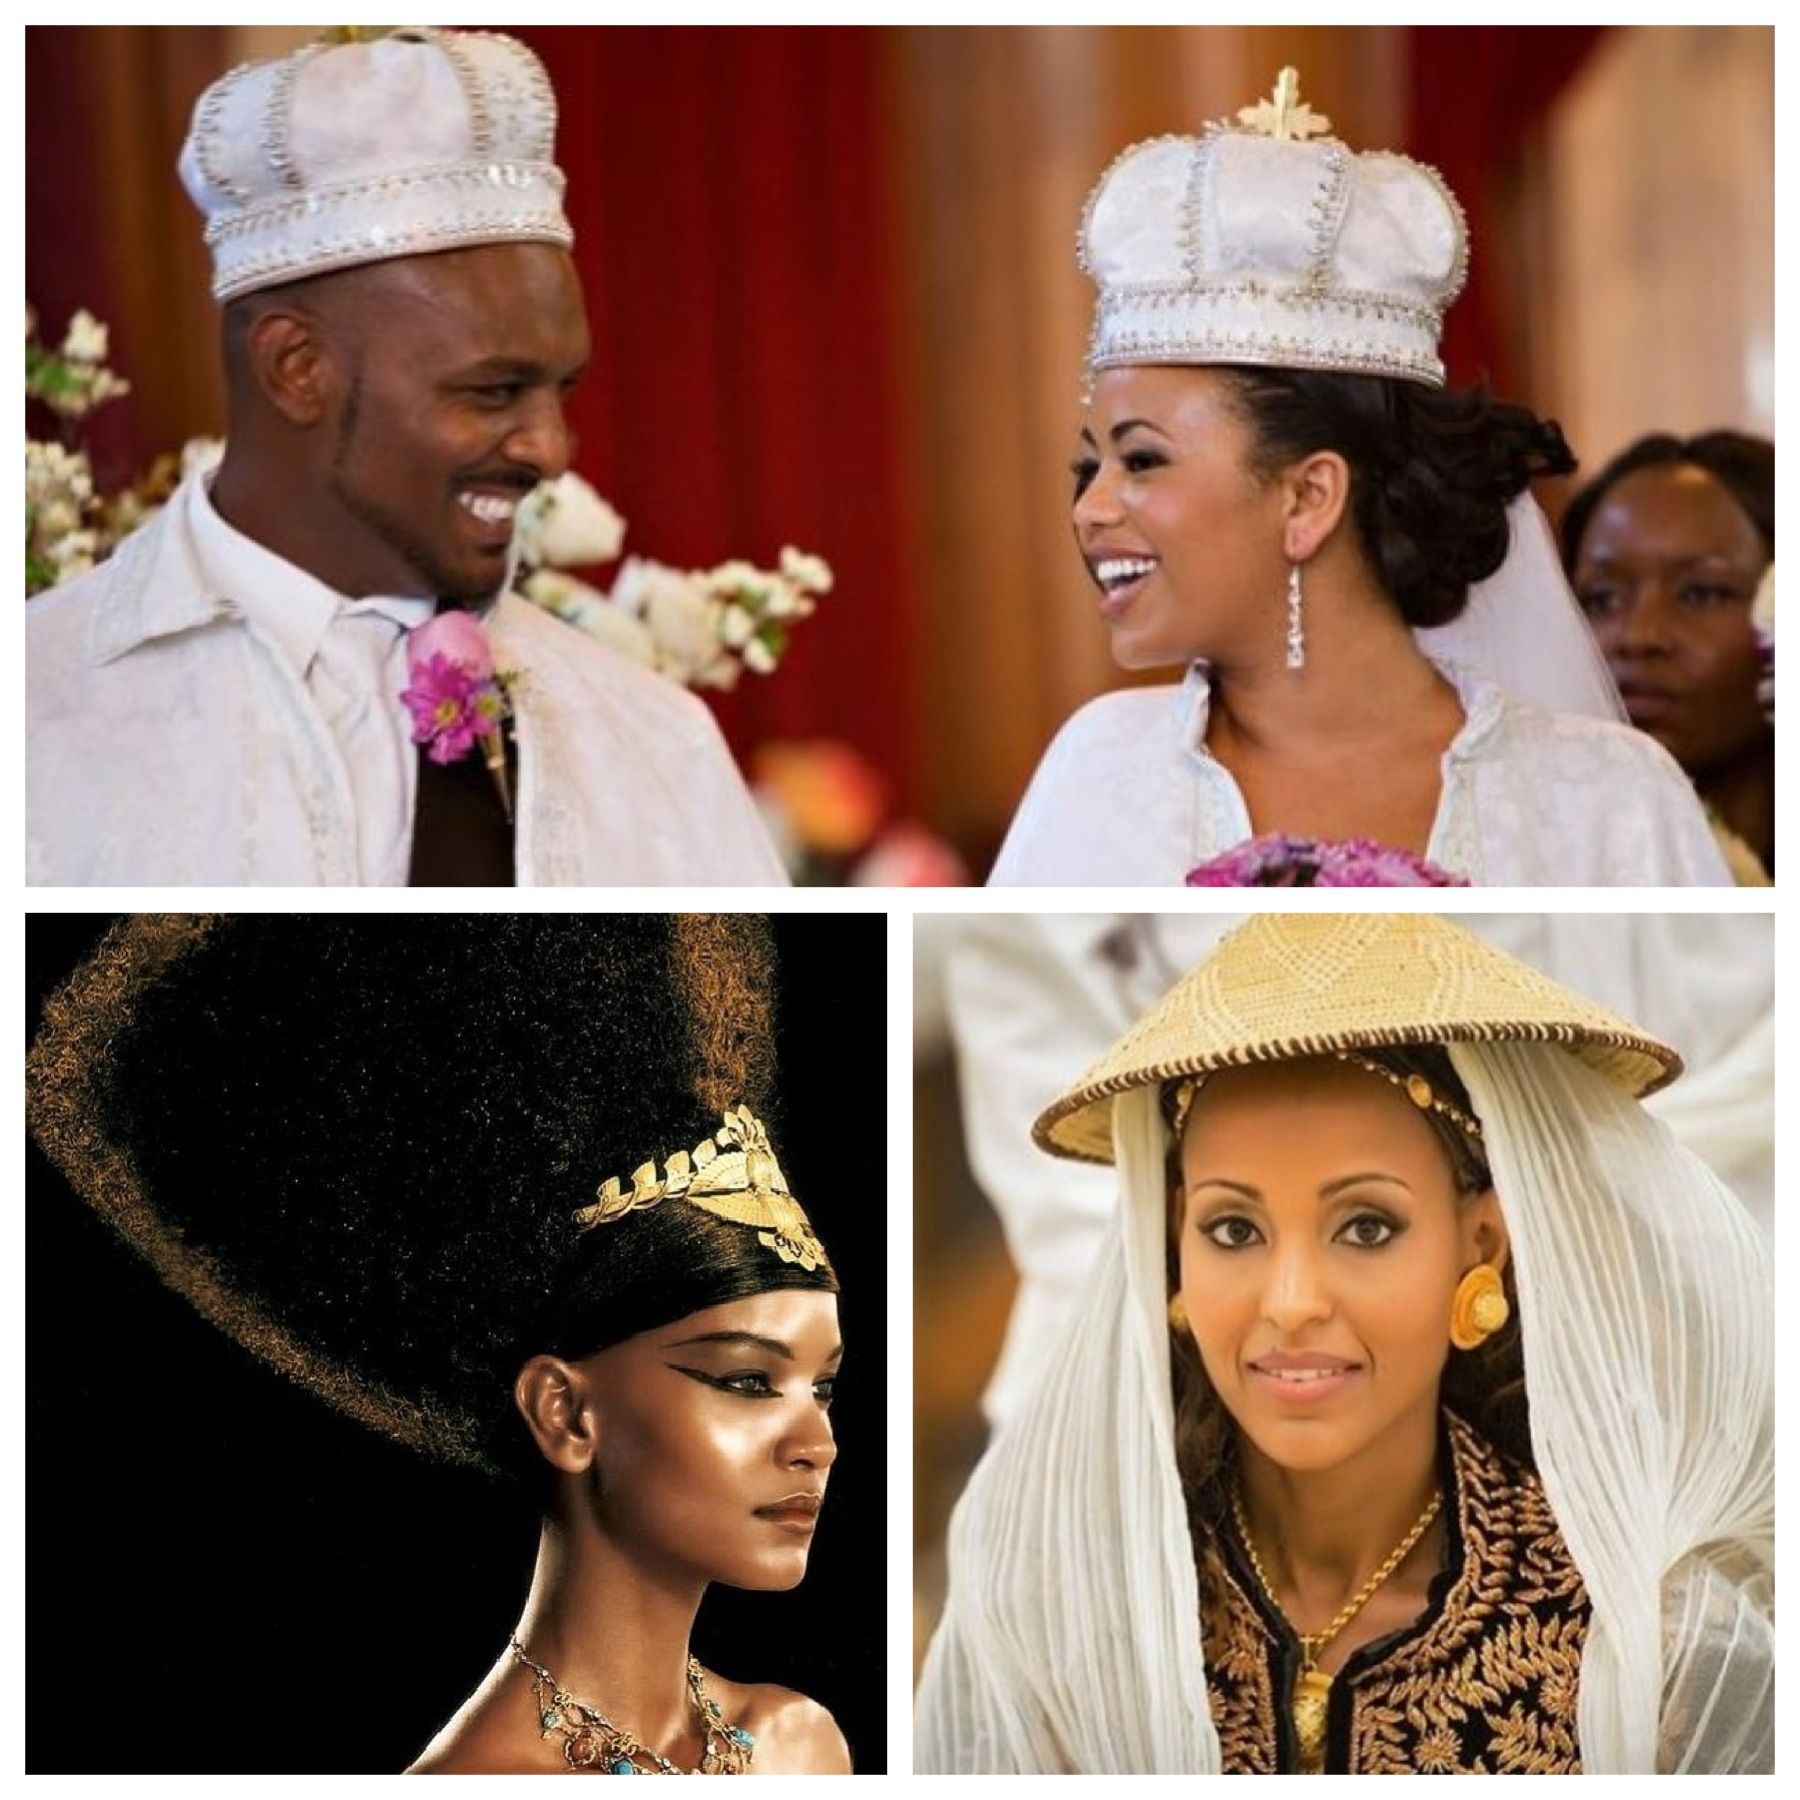 every queen deserves a crown love our culture! nothing like